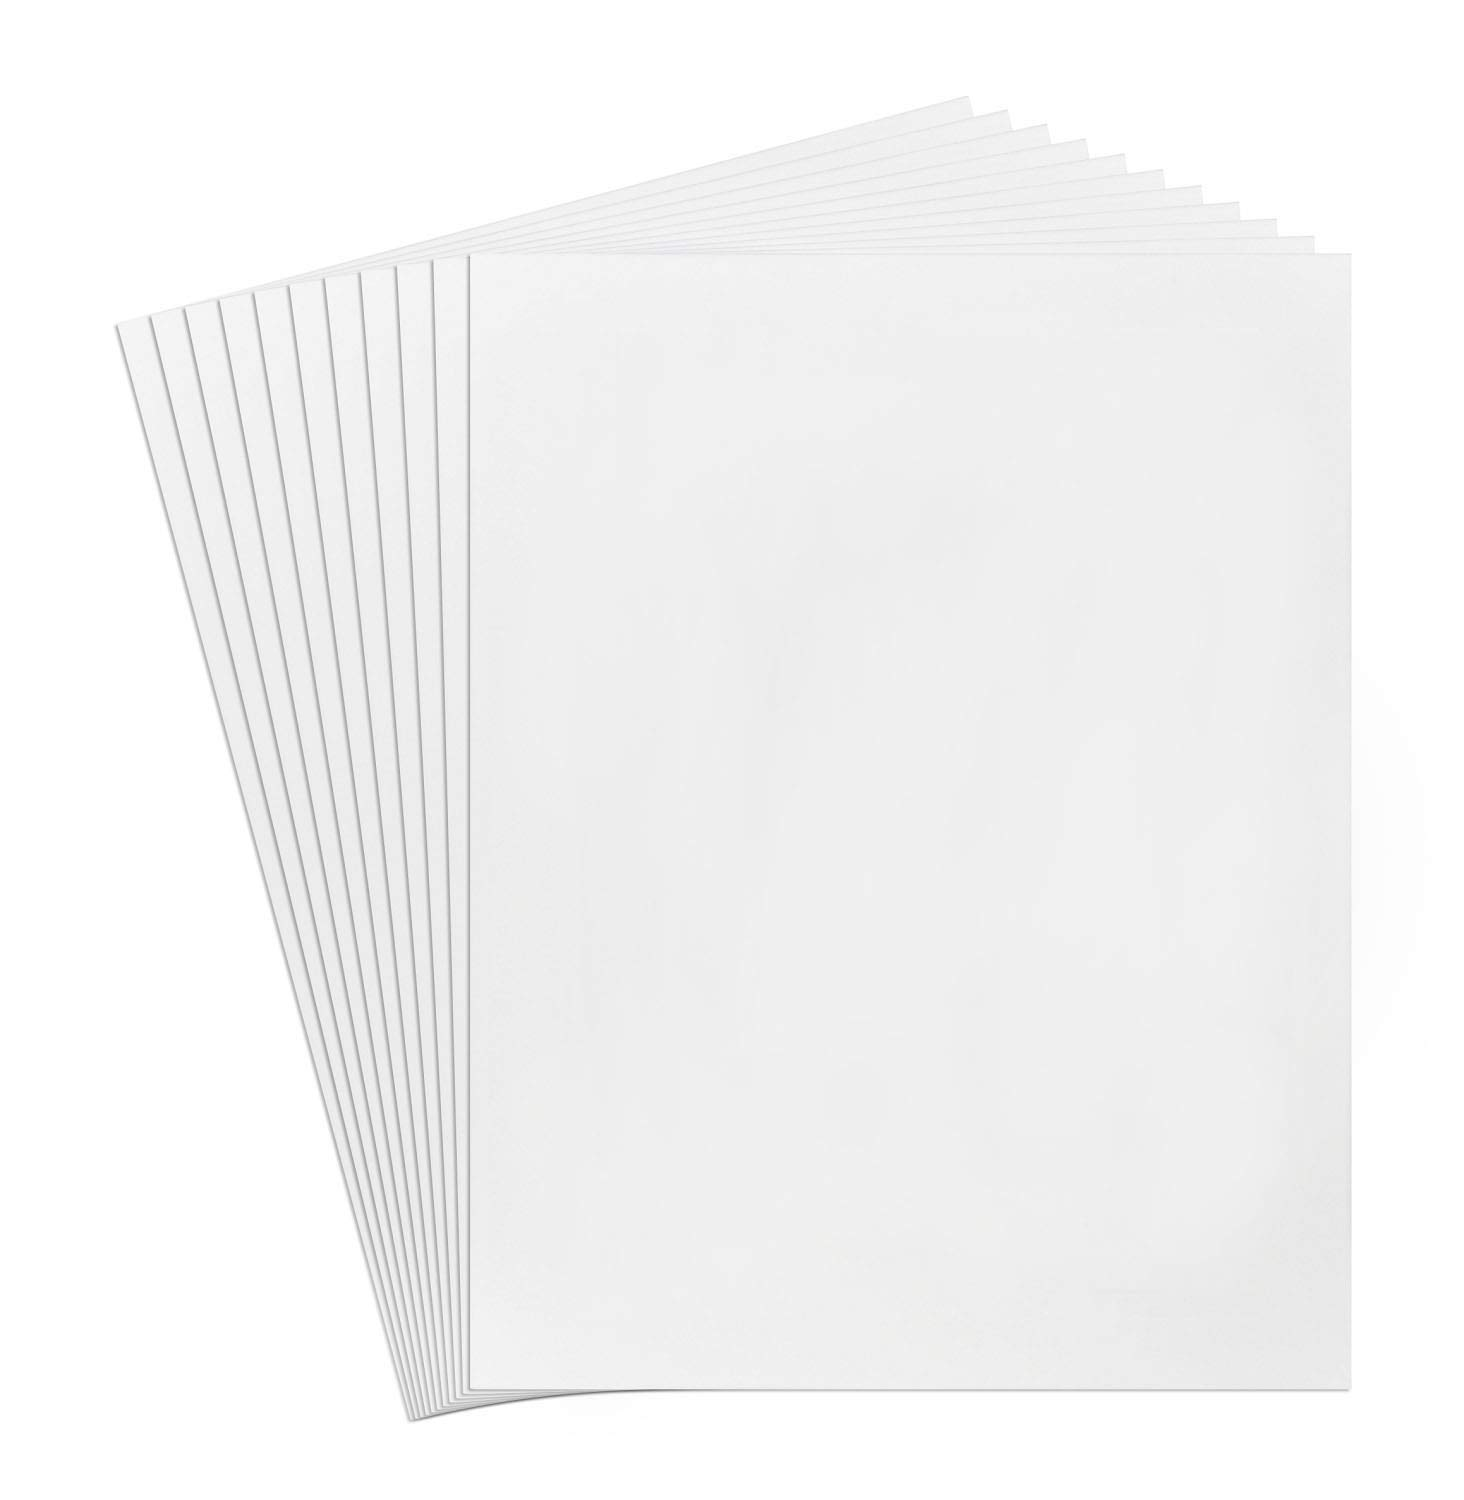 Golden State Art, 10-Pack, 11x14 Backing Boards for Picture Framing by Golden State Art